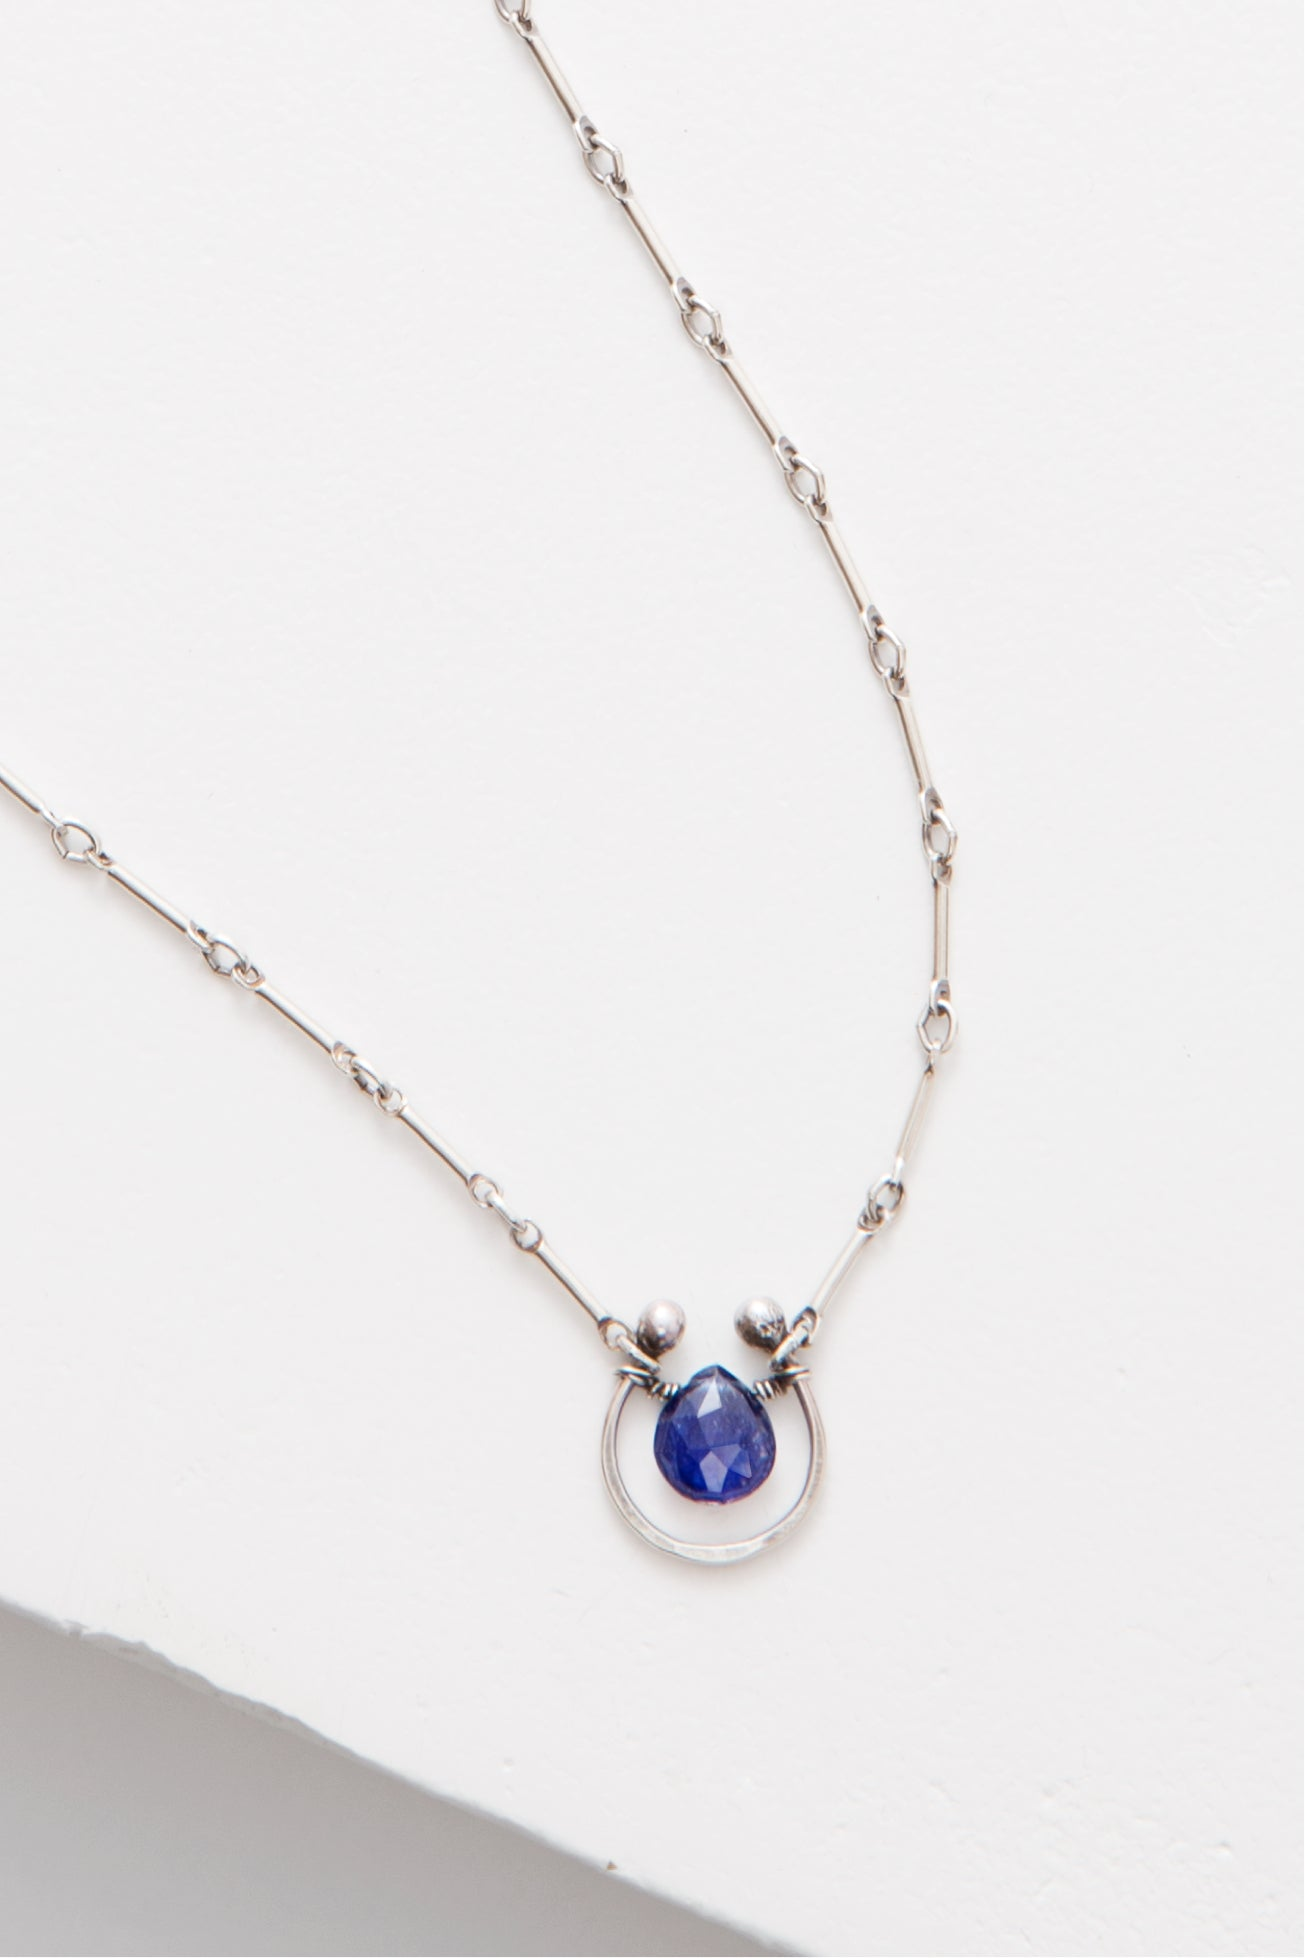 Horseshoe Solo Necklace with Gem